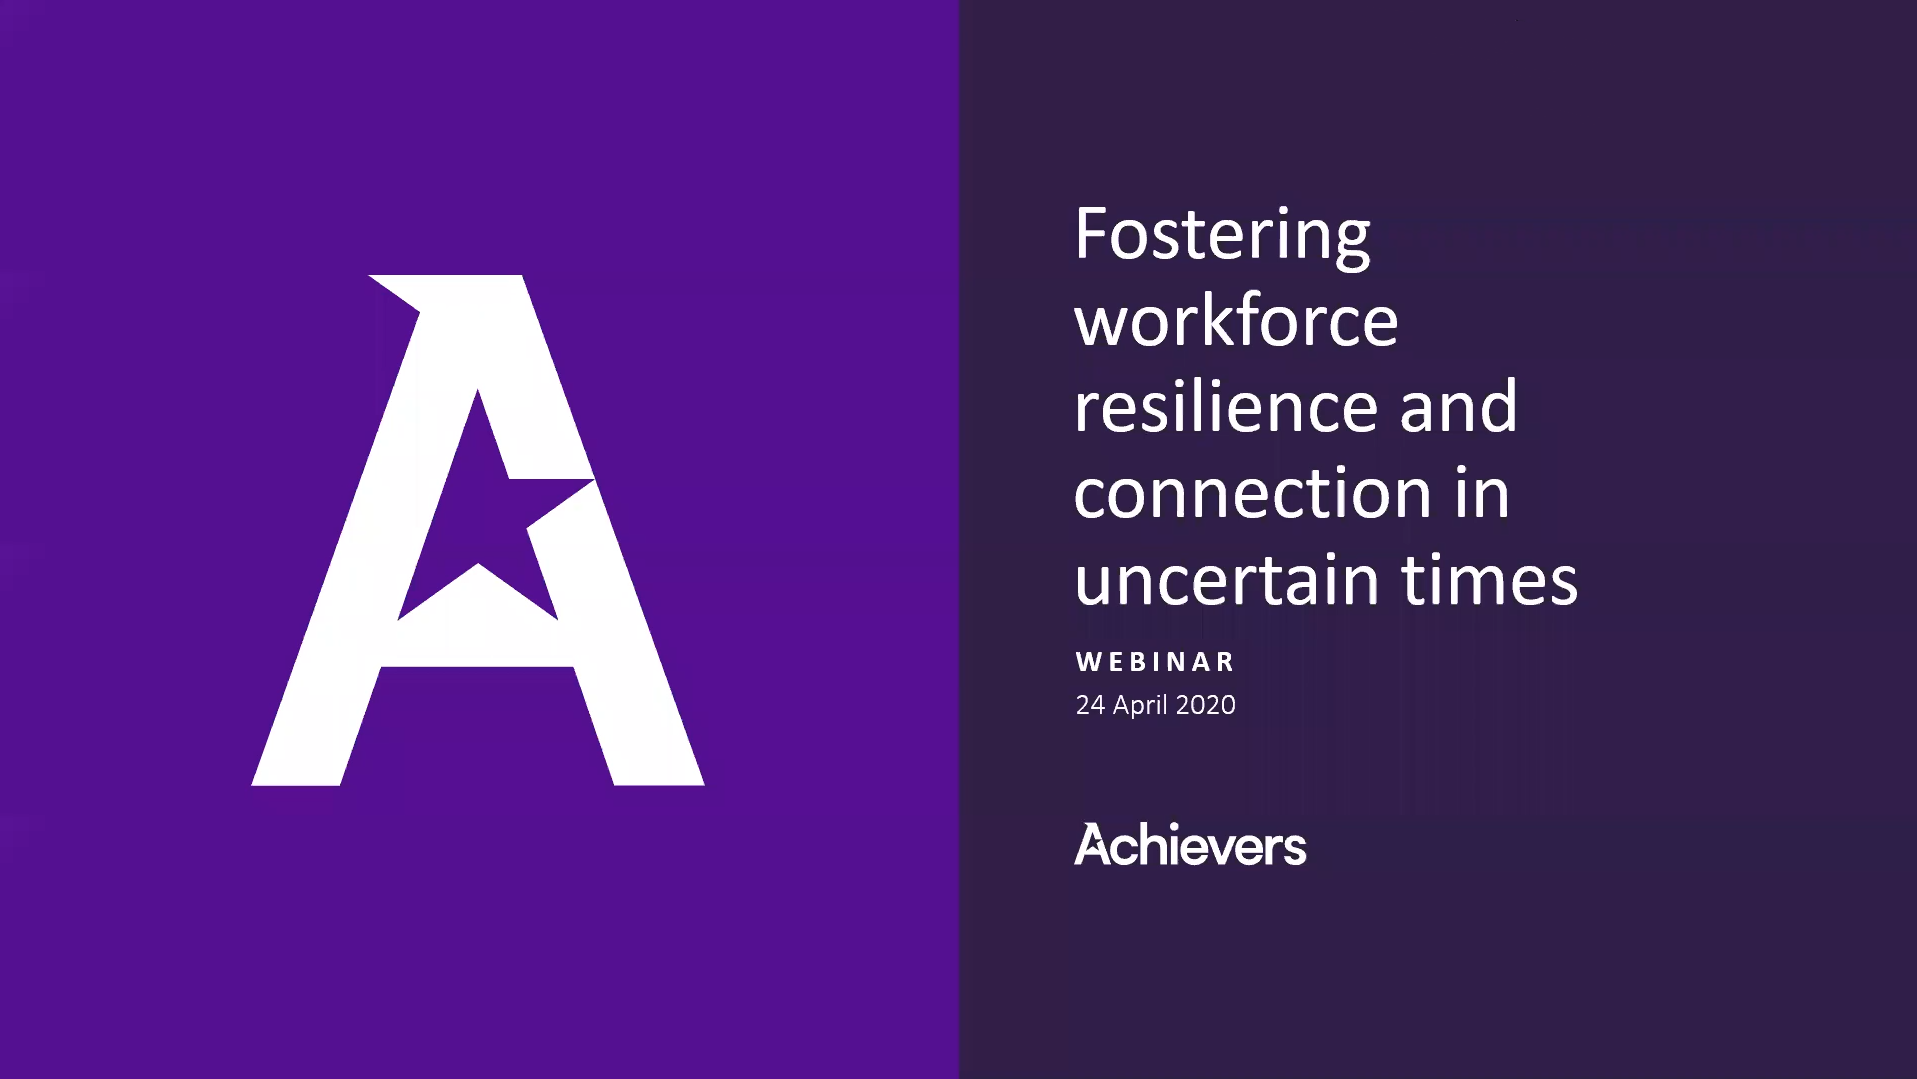 Fostering workplace resilience and connection during COVID-19